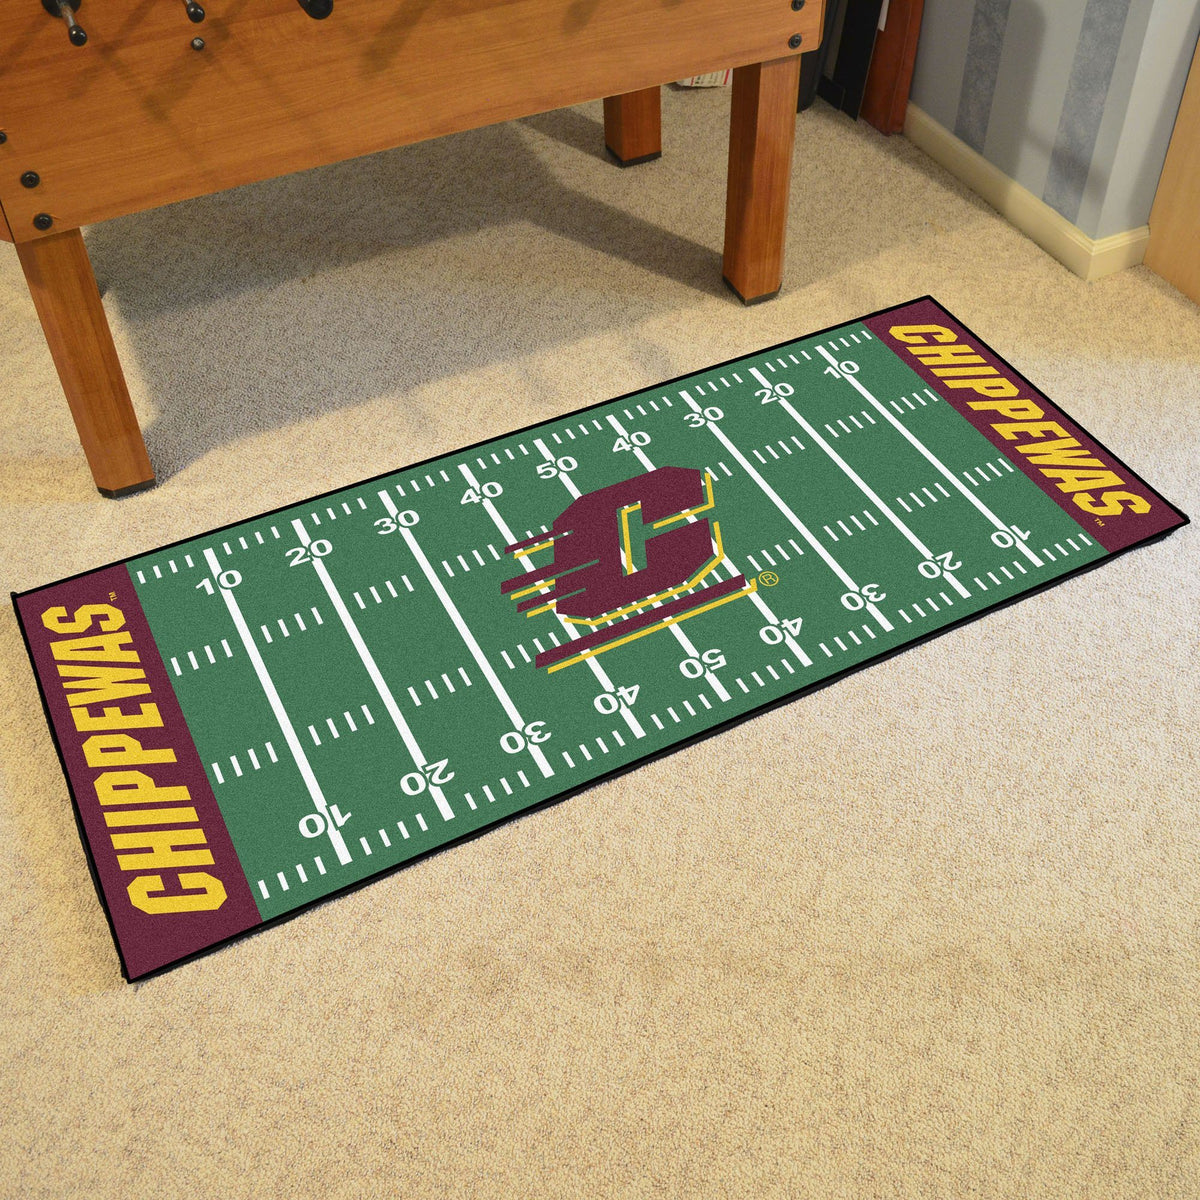 Collegiate - Football Field Runner Collegiate Mats, Rectangular Mats, Football Field Runner, Collegiate, Home Fan Mats Central Michigan